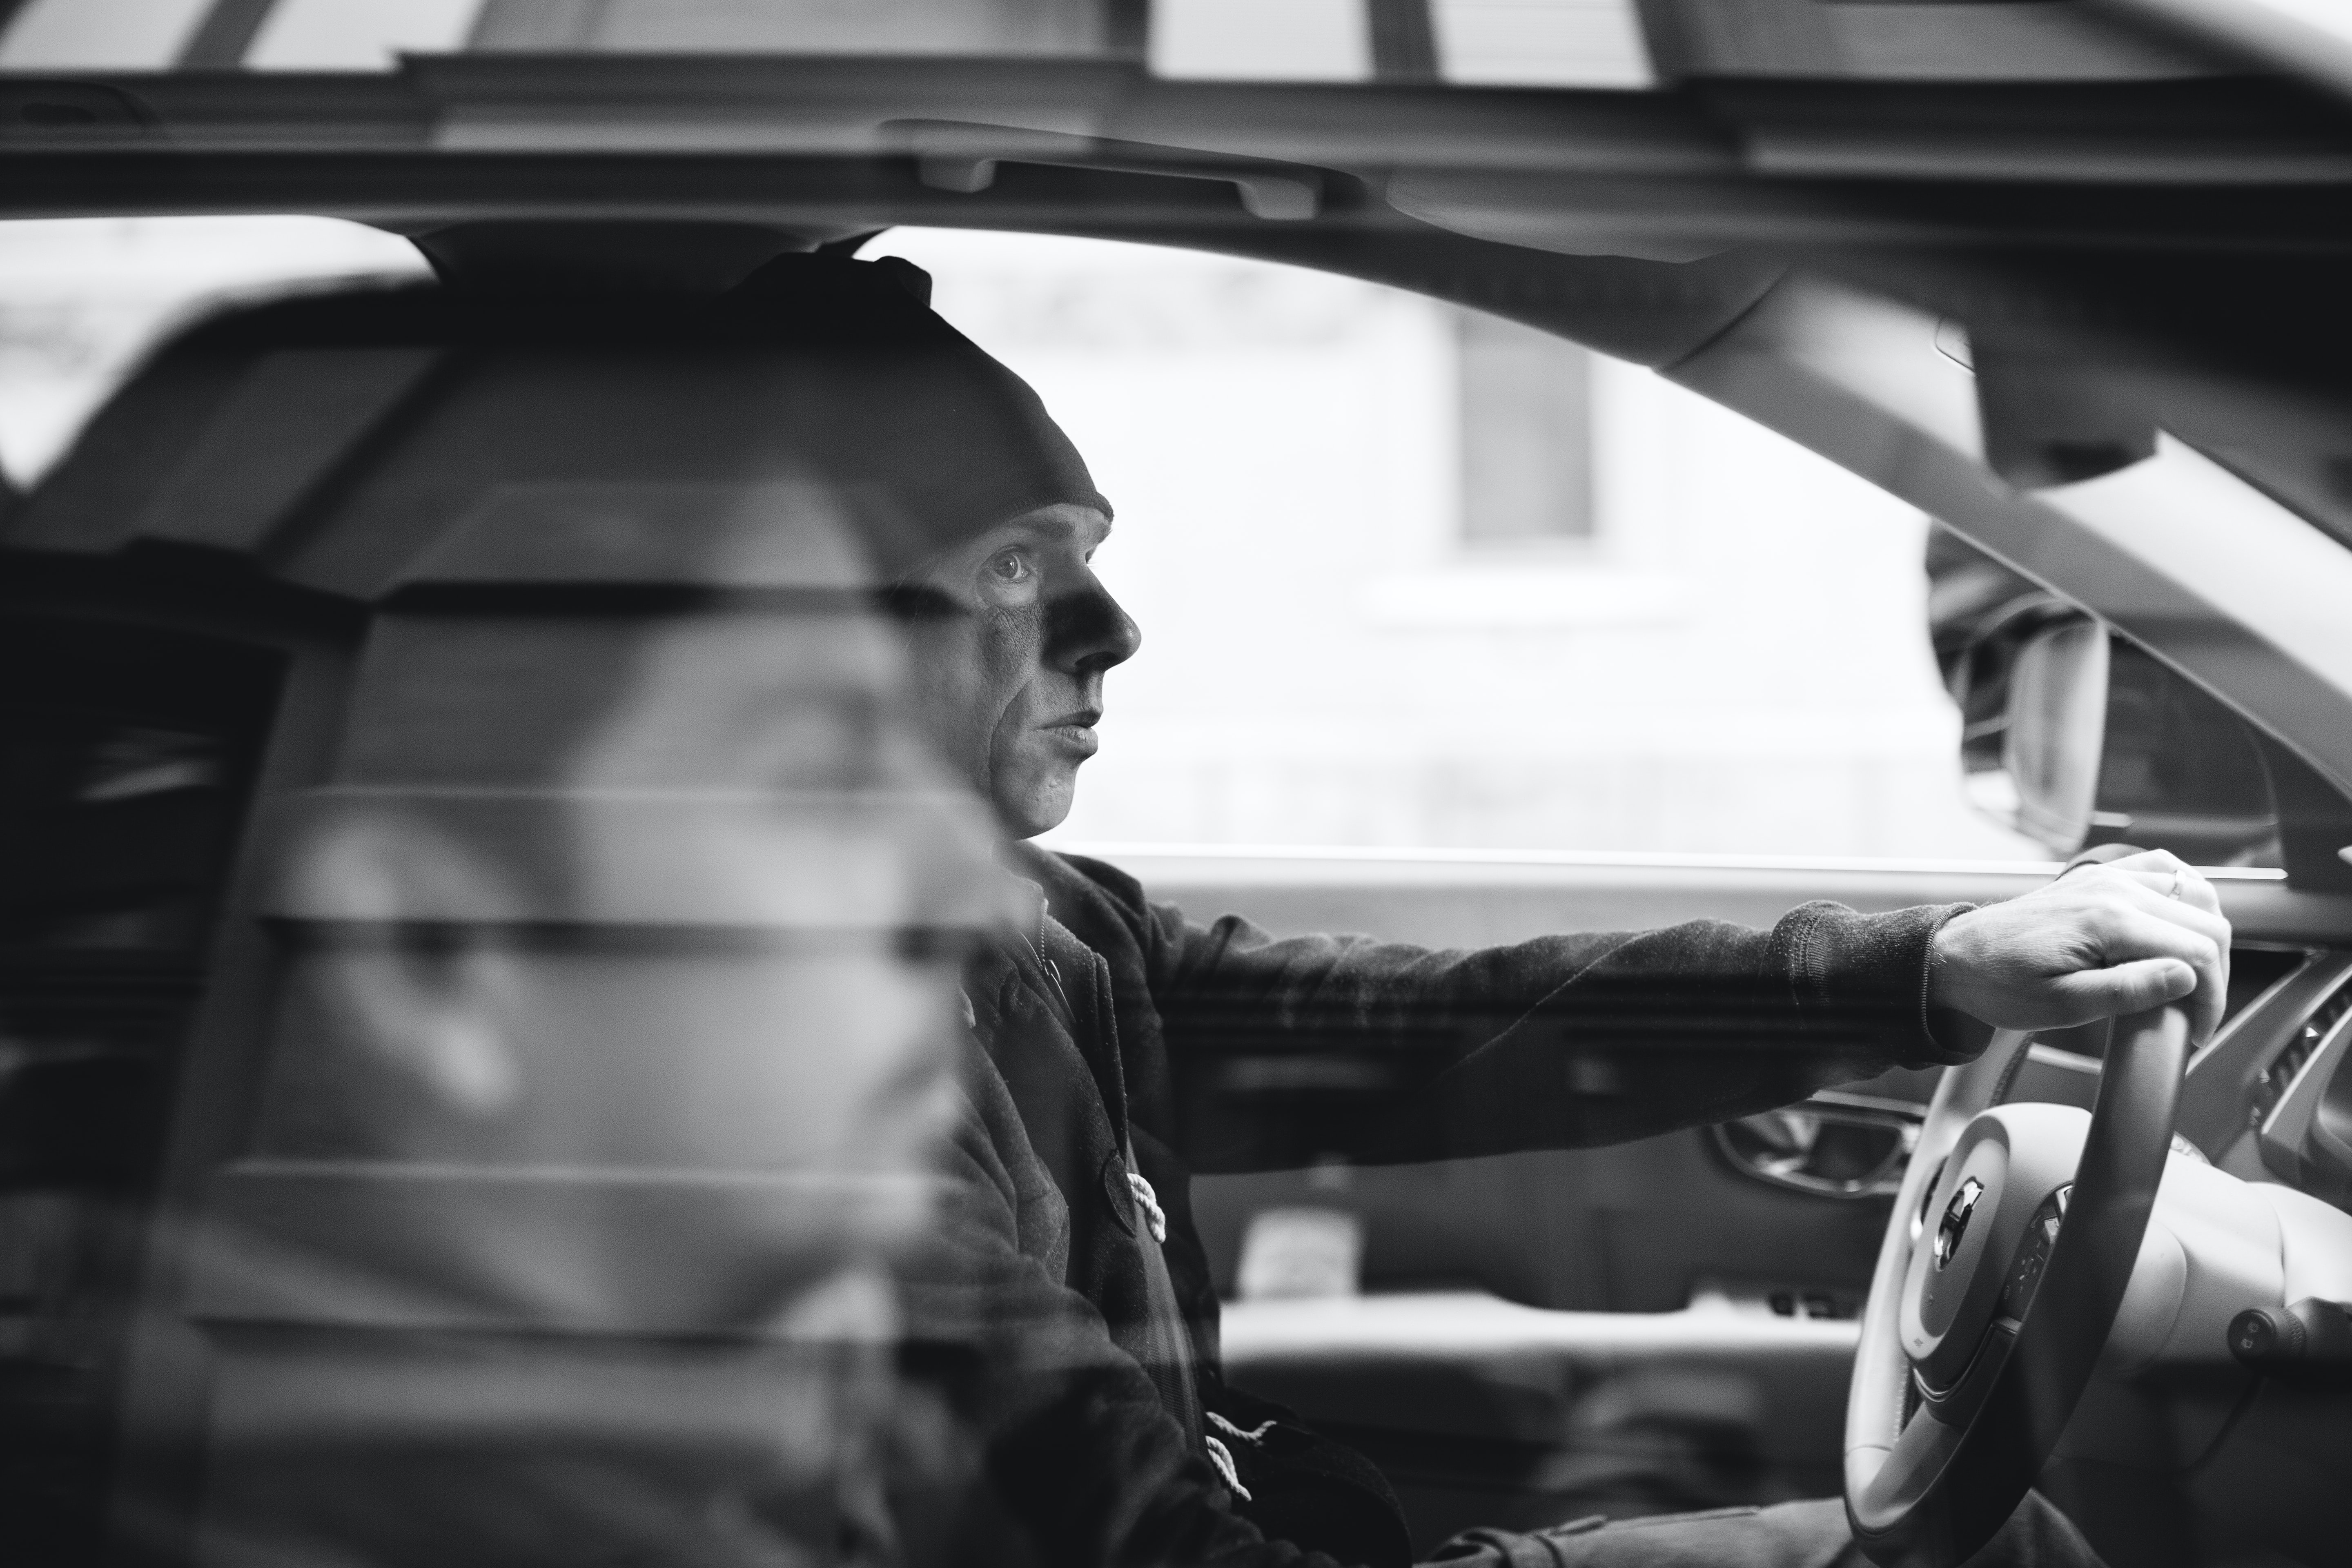 grayscale photo of two men riding on vehicle